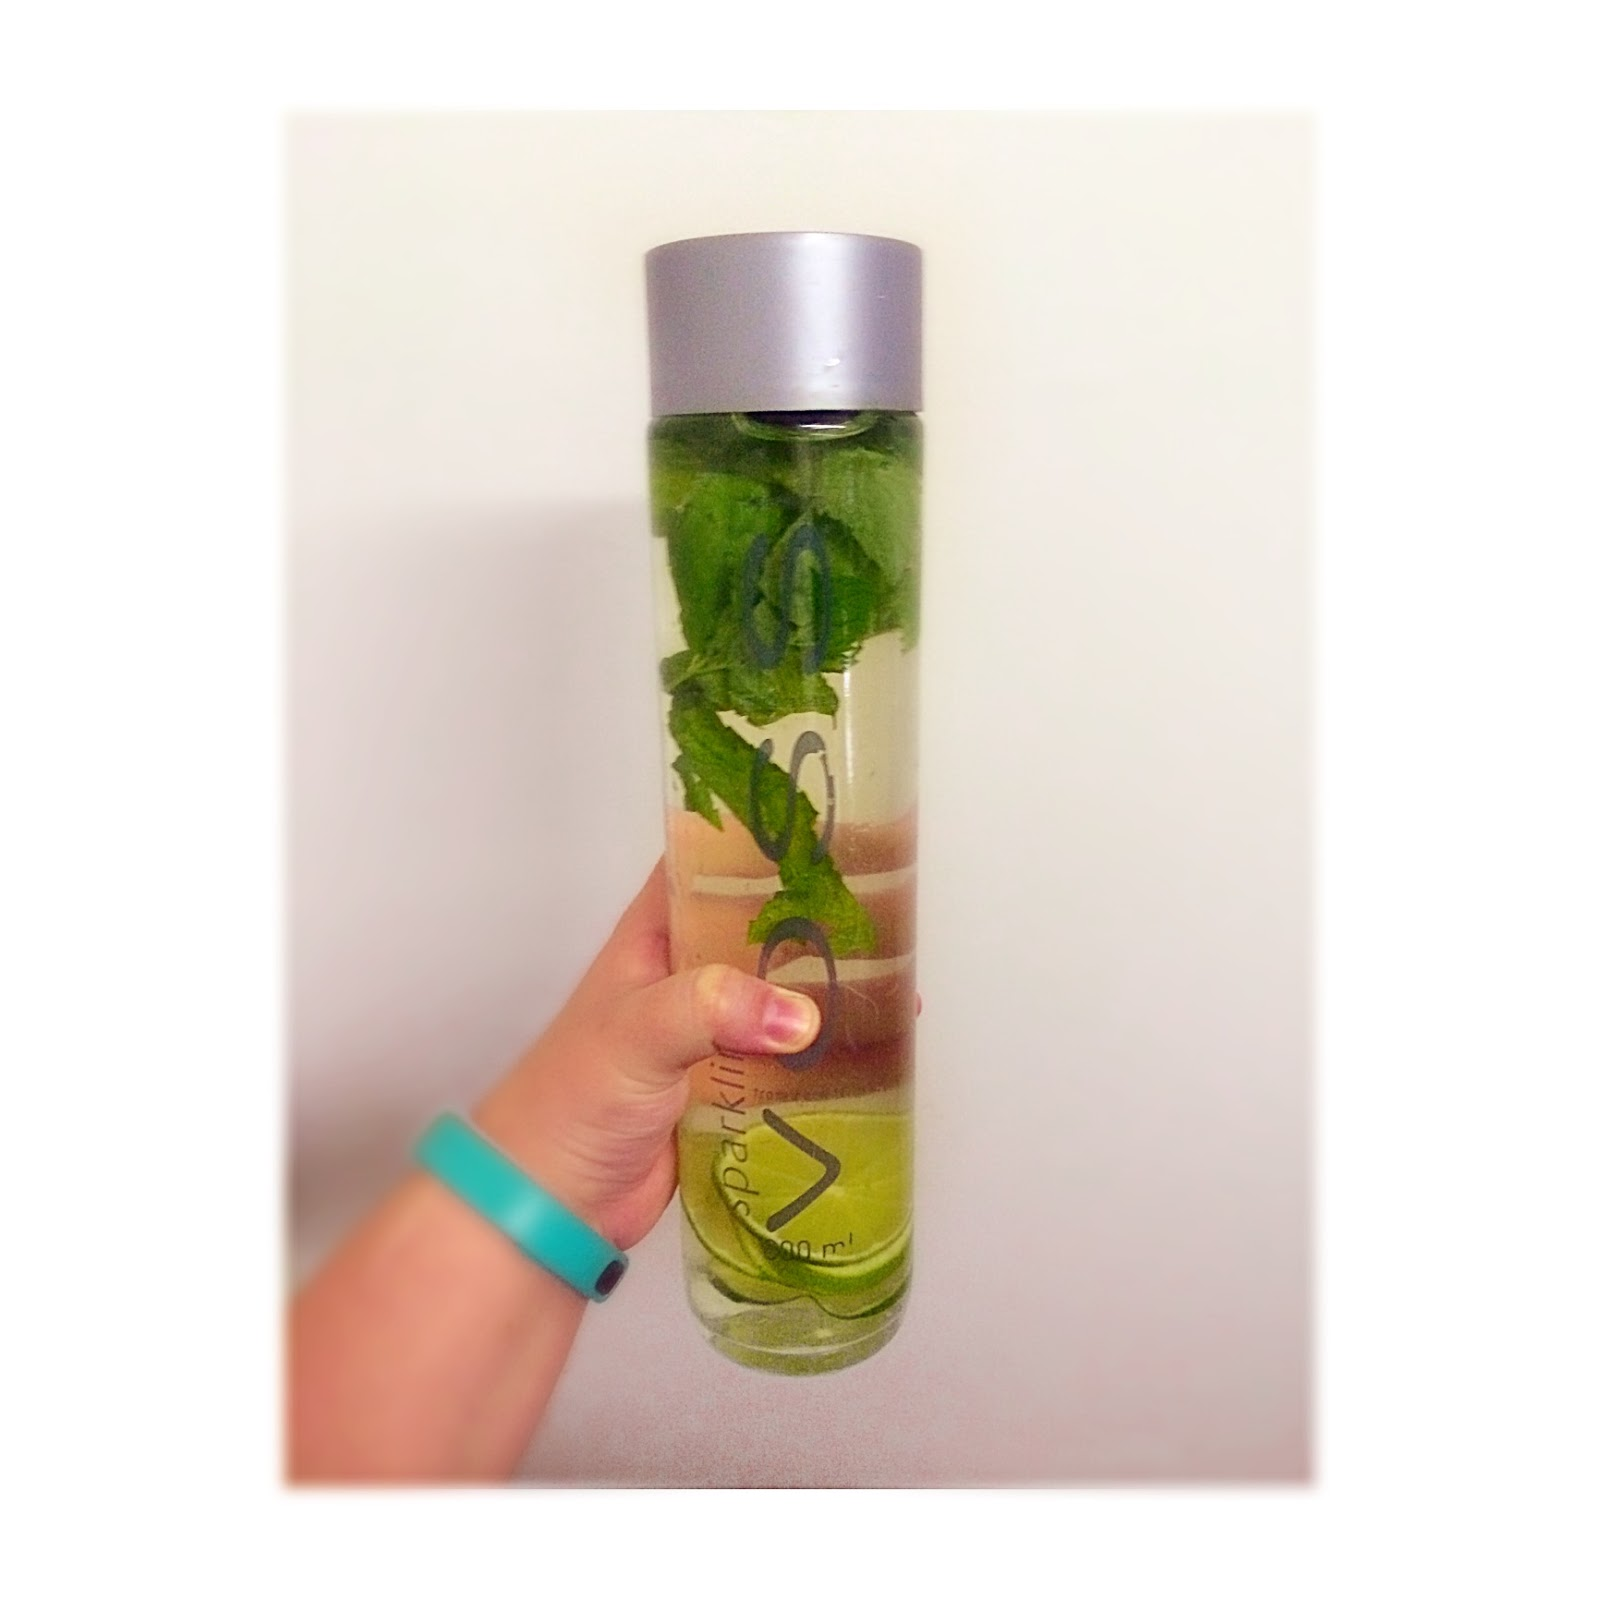 The Green Tea Mojito Detox Drink